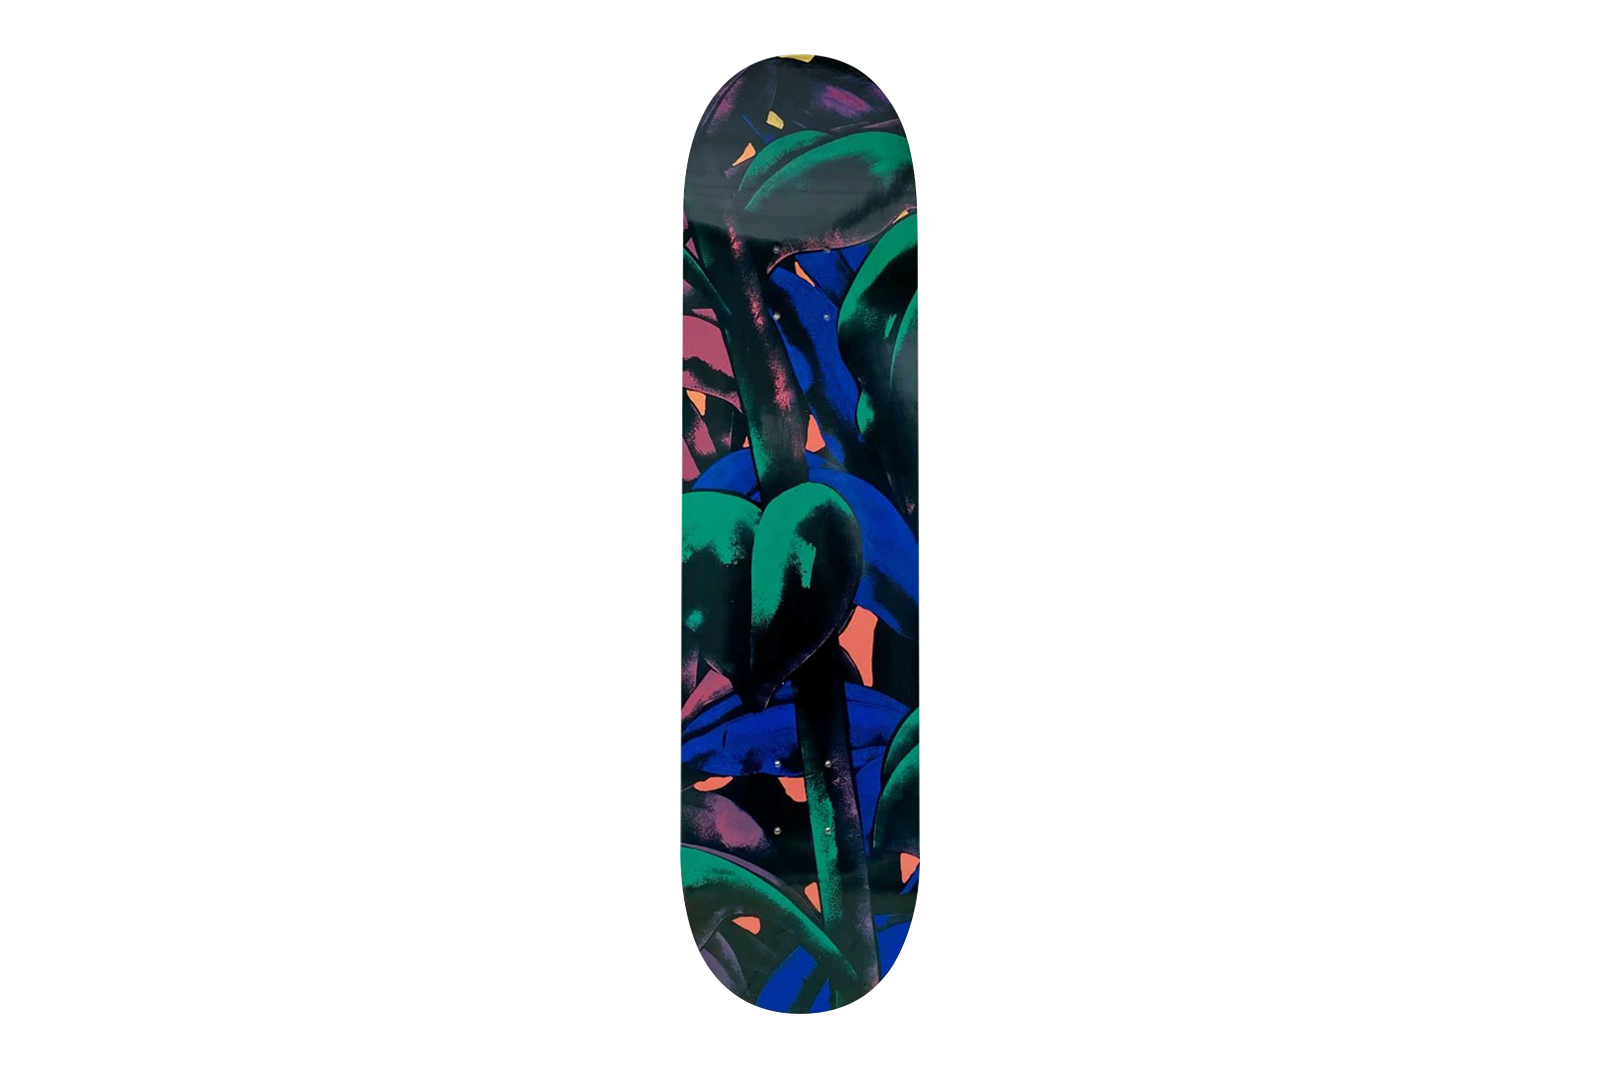 julien-colombier-skate-deck_p2